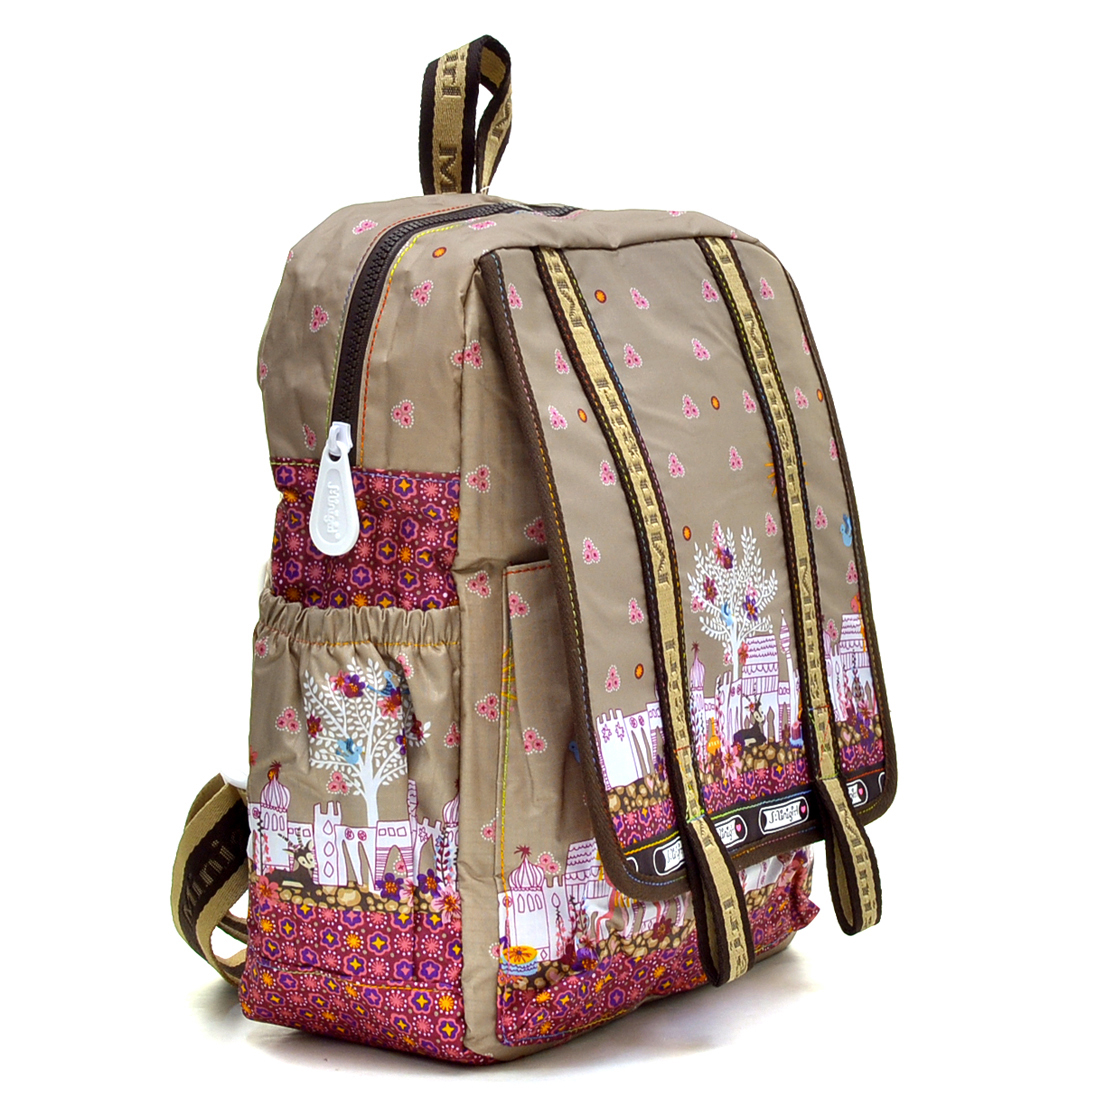 Nylon Fun Prints Backpack with Flap Over Compartment